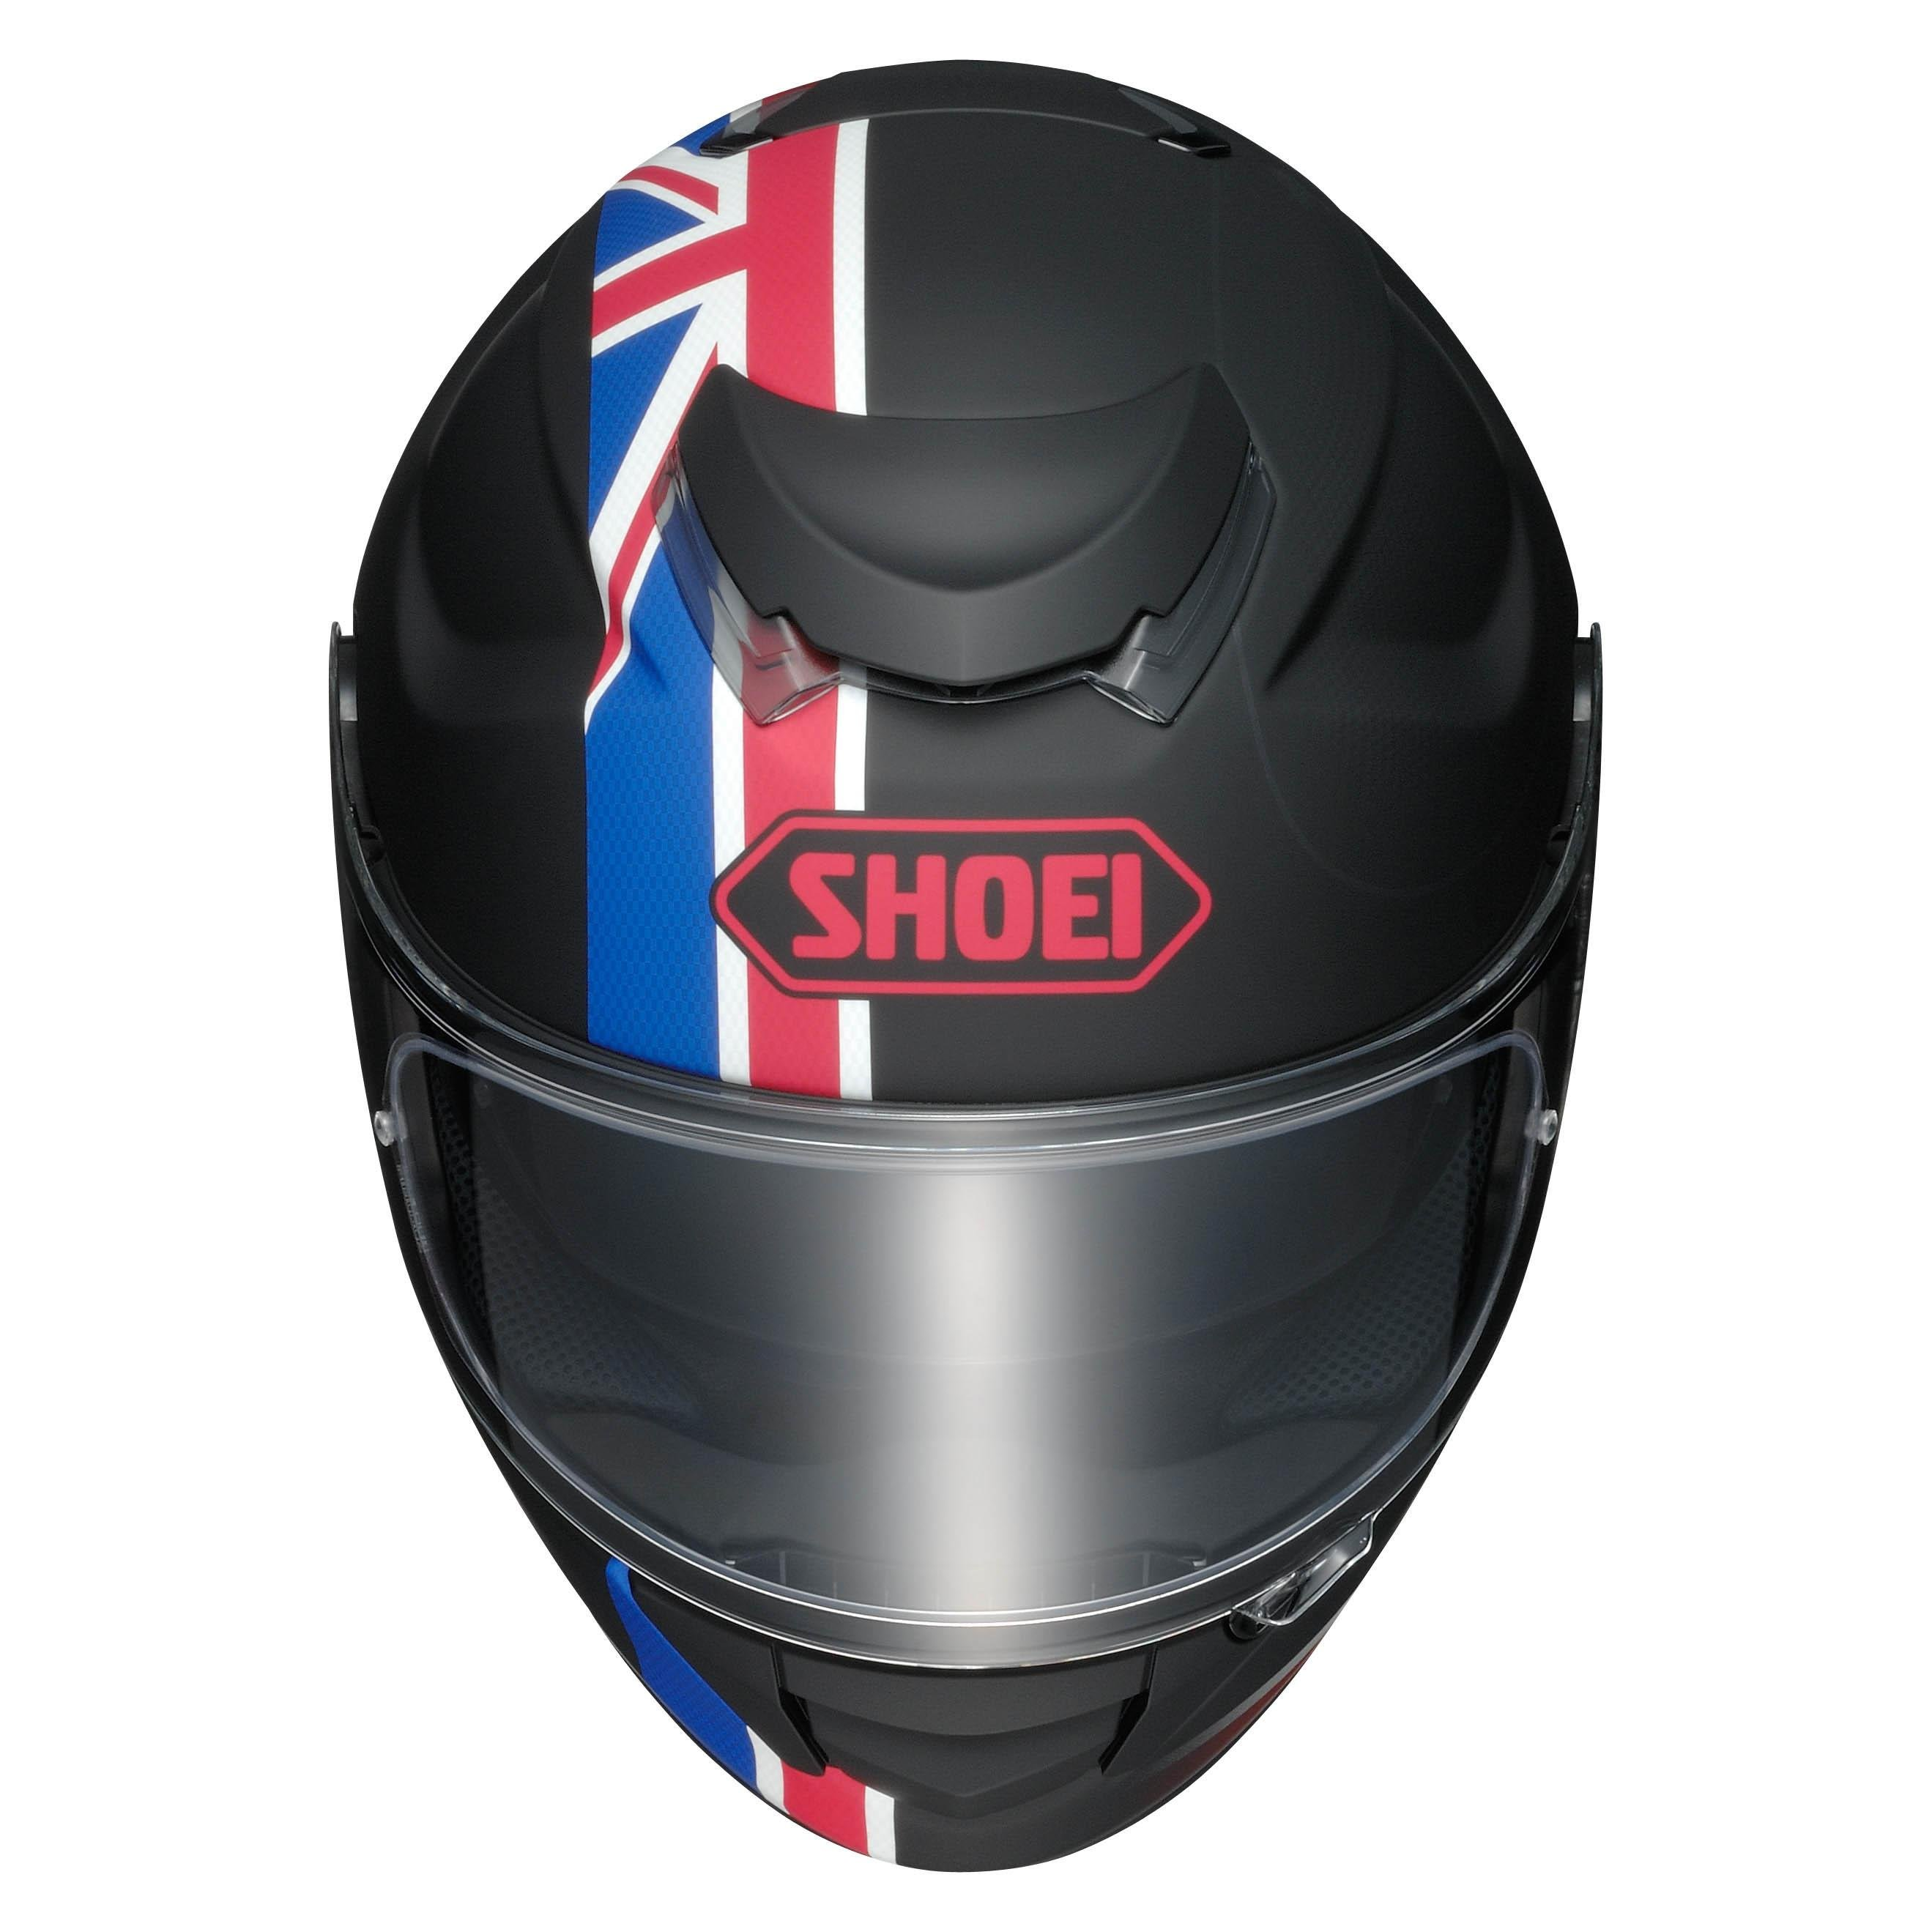 clearance shoei gt air royalty tc 1 helmet online motorcycle accessories australia scm. Black Bedroom Furniture Sets. Home Design Ideas